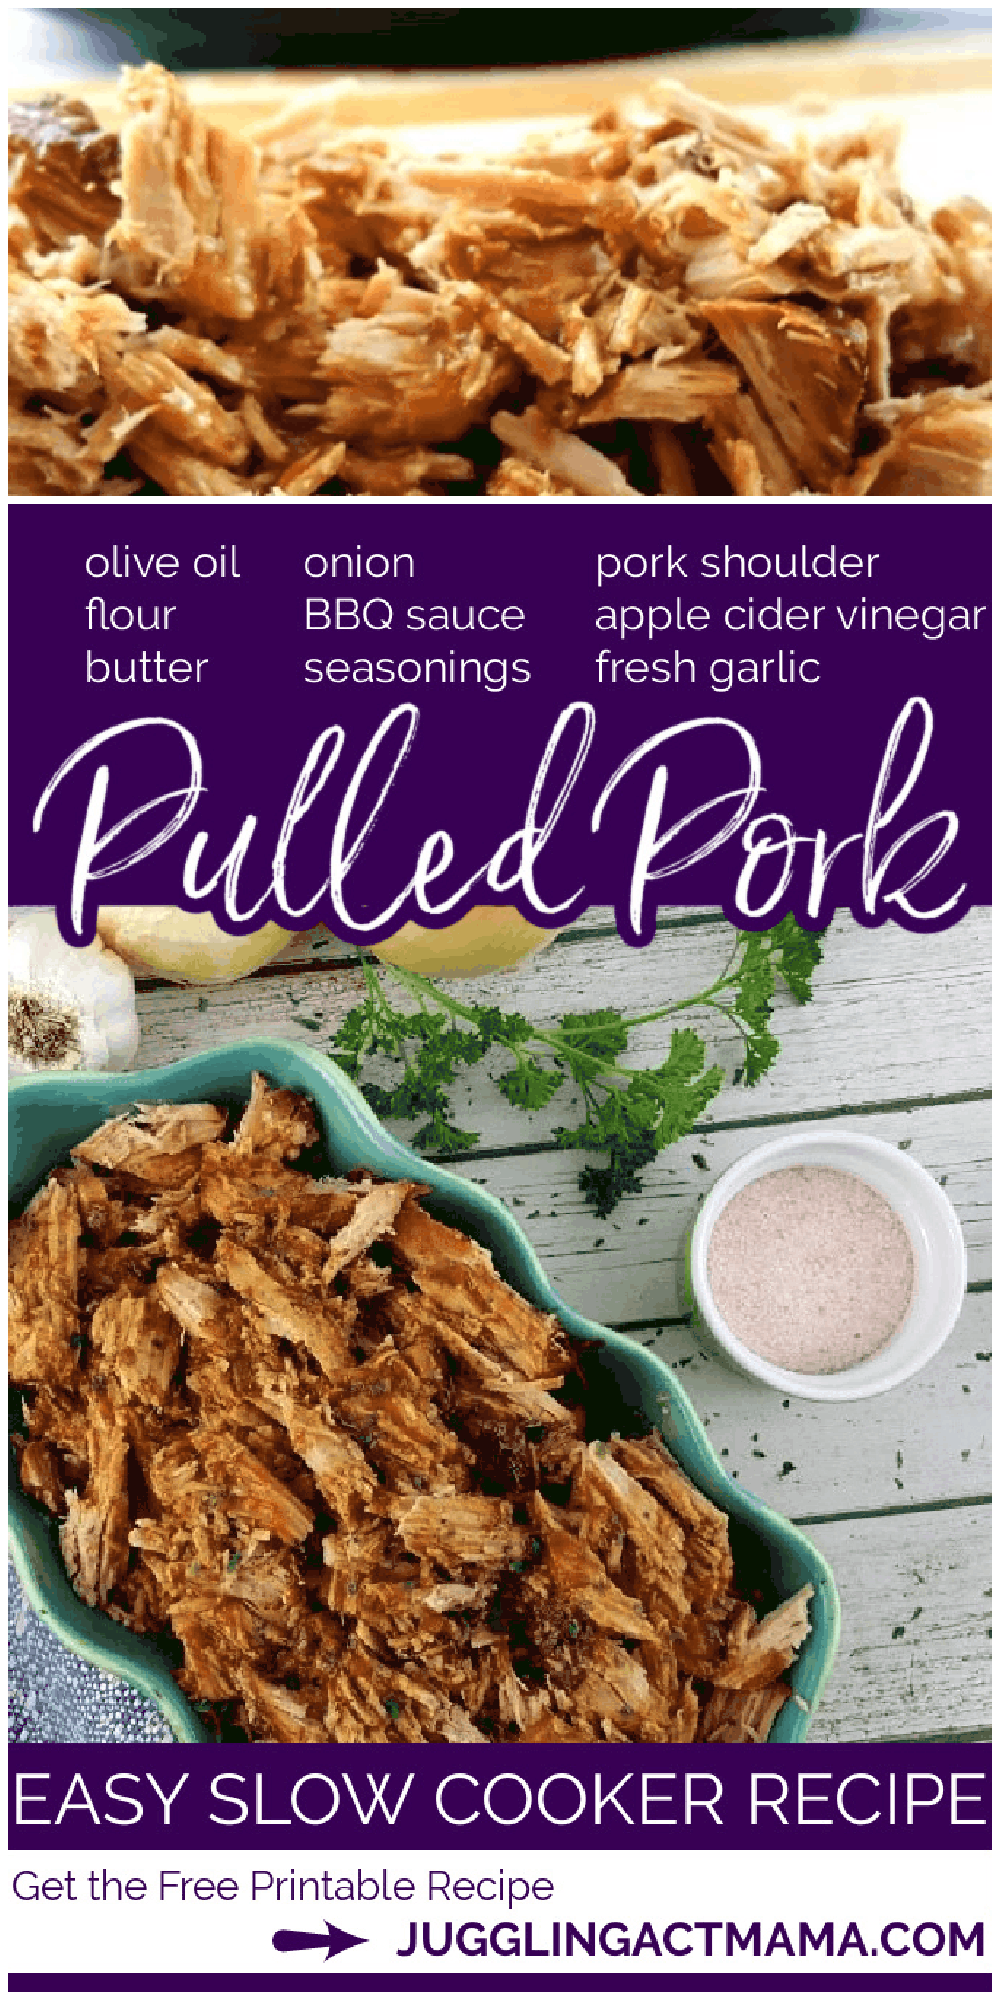 My classic Slow Cooker Pulled Pork Recipe is perfect for once a month or once a week cooking. I have tons of tips on how to freeze, what to serve with pulled pork and much more in this post. It is a versatile recipe with simple ingredients with a tried and true method for cooking pulled pork in a slow cooker! via @jugglingactmama